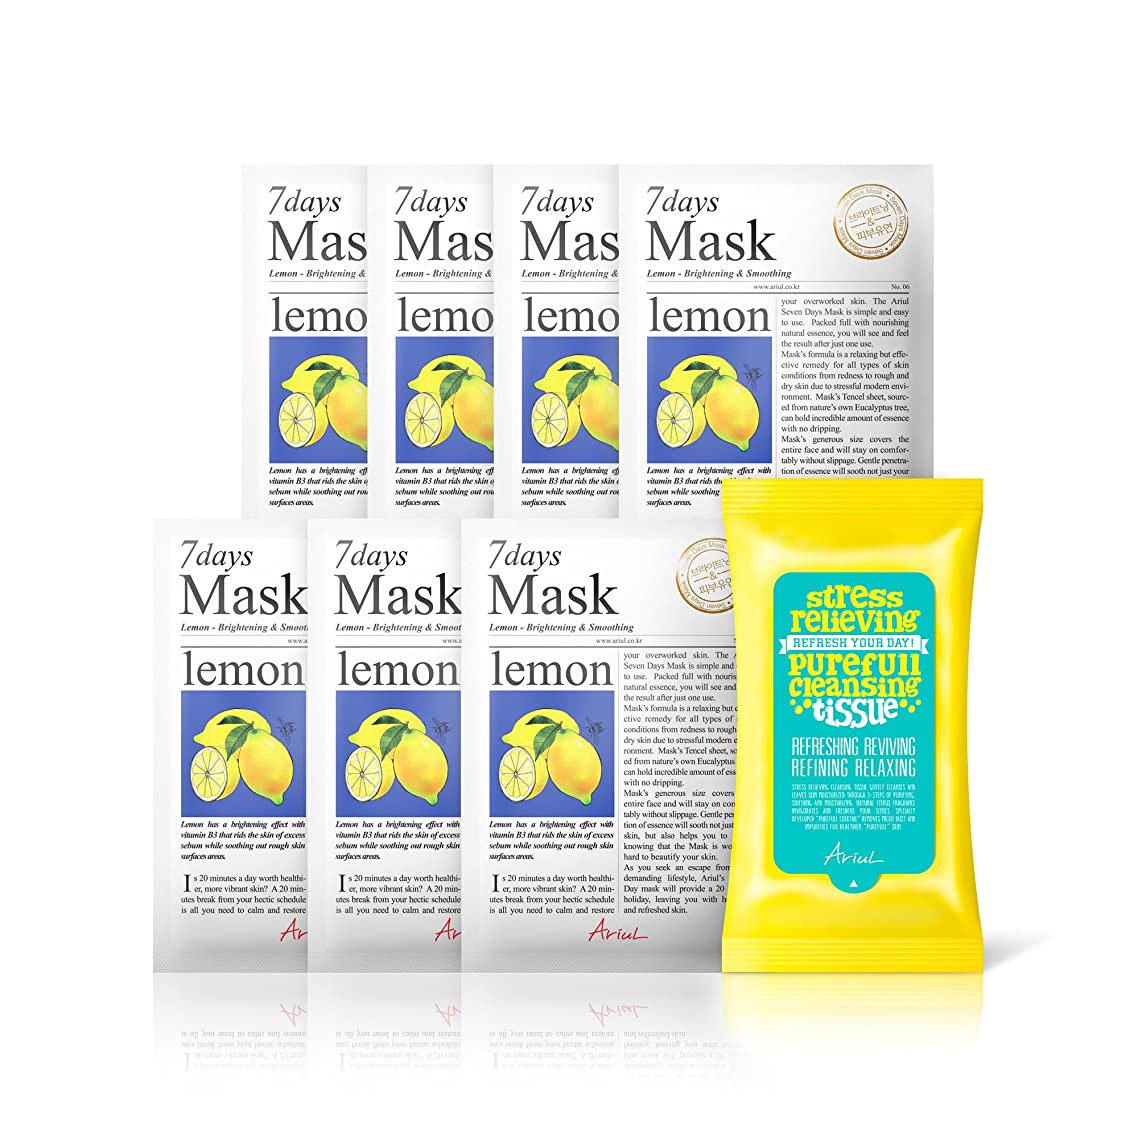 Ariul Natural Lemon Sheet Mask for Oily Skin, Brightening & Smoothing, 7 Days Mask Multipack (7 Masks + 15 Free Wipes) Premium Facial Mask Pack to Reduce Pigmentation, Exfoliation, Anti-oxidation